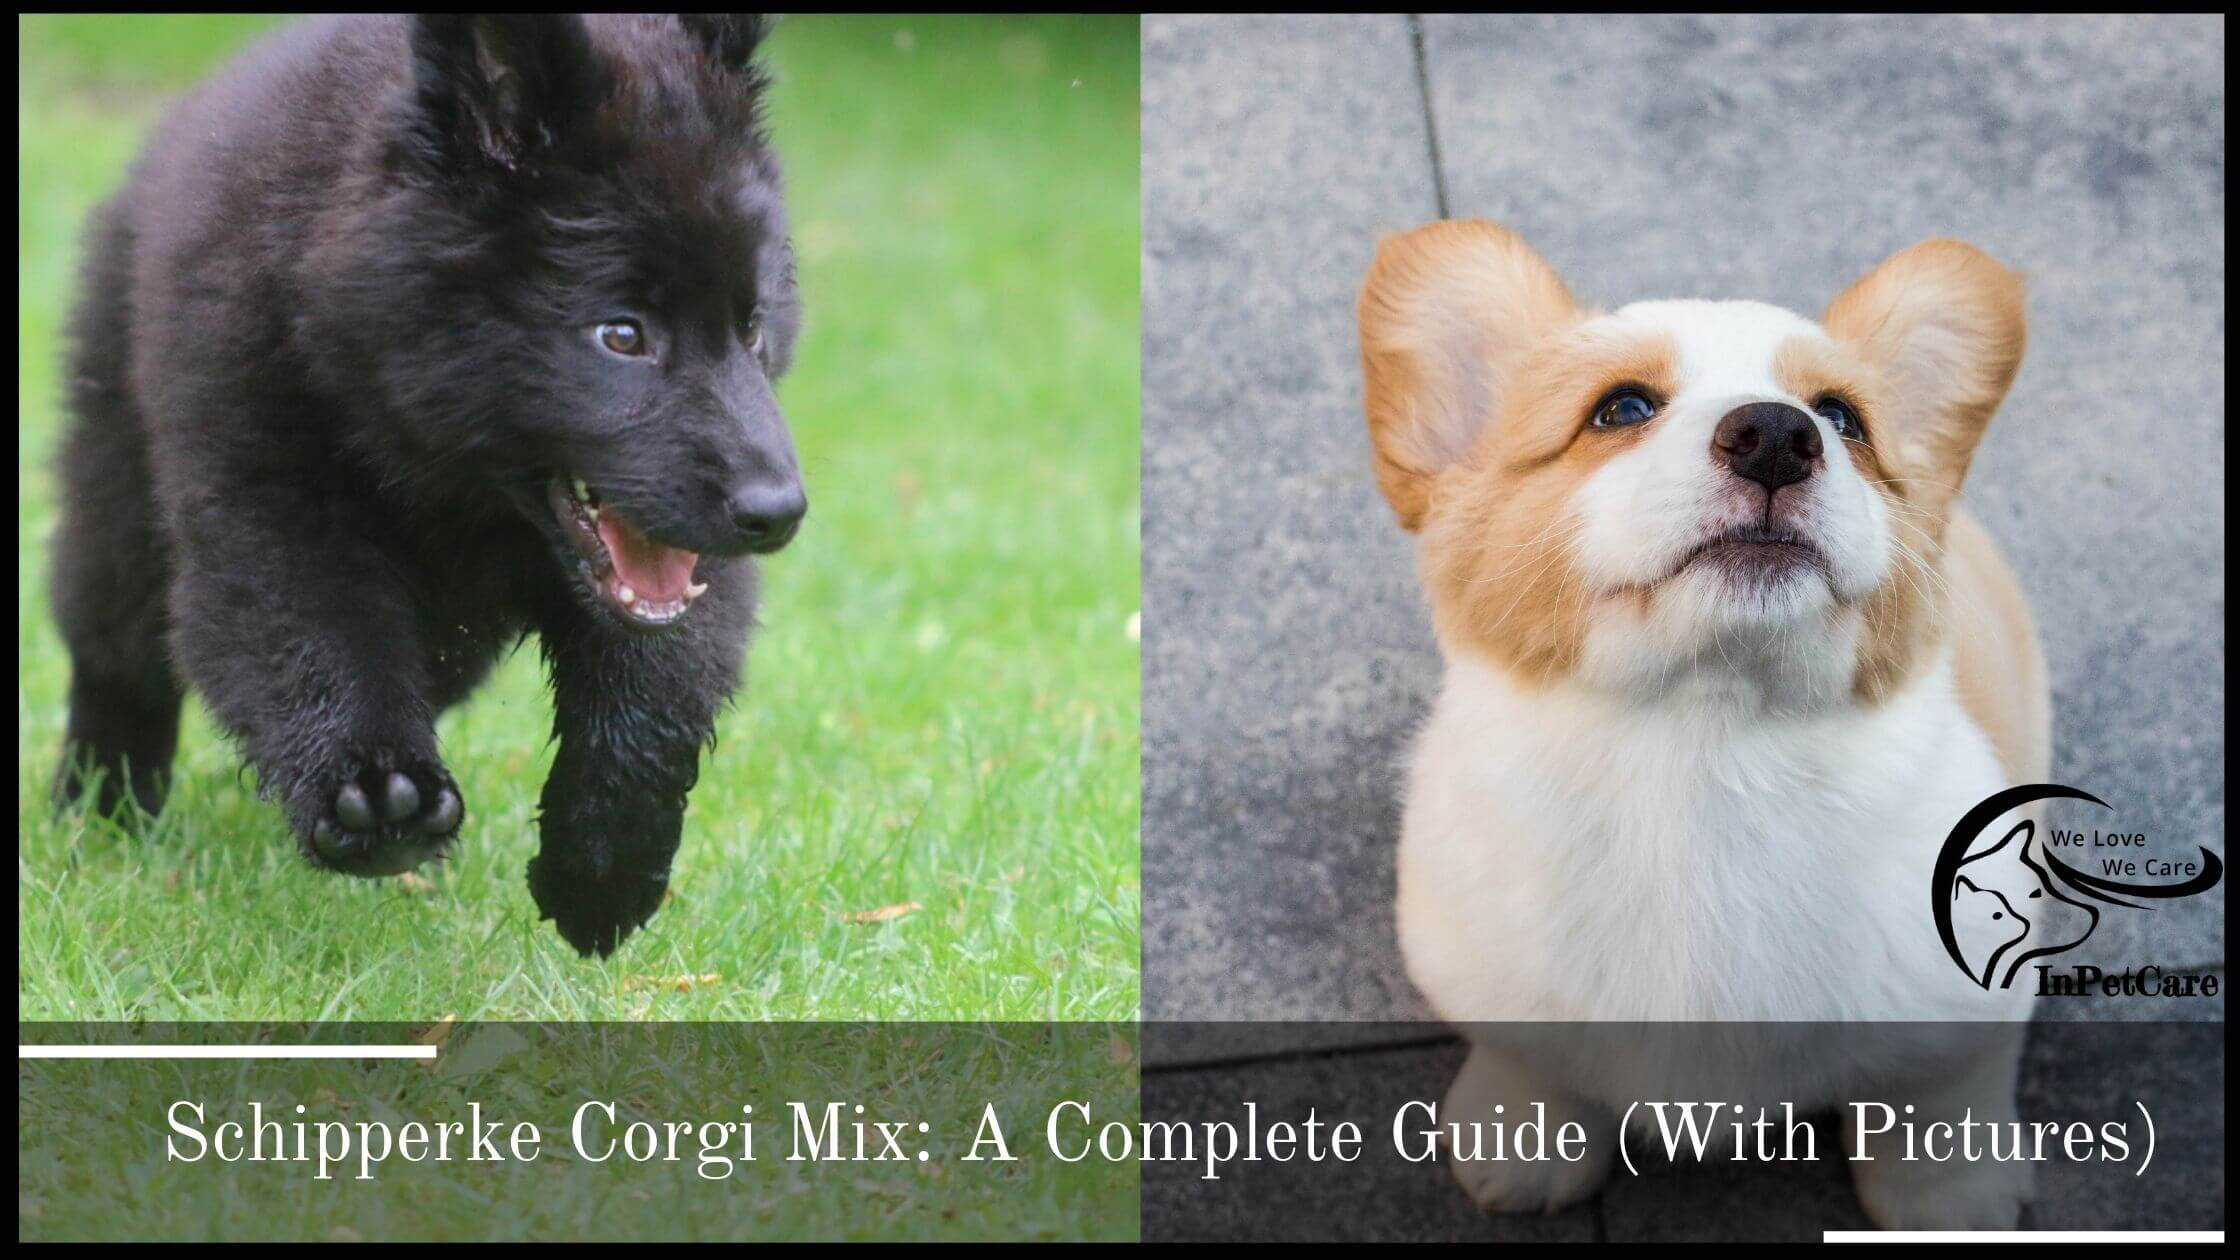 Schipperke Corgi Mix: A Complete Guide (With Pictures)